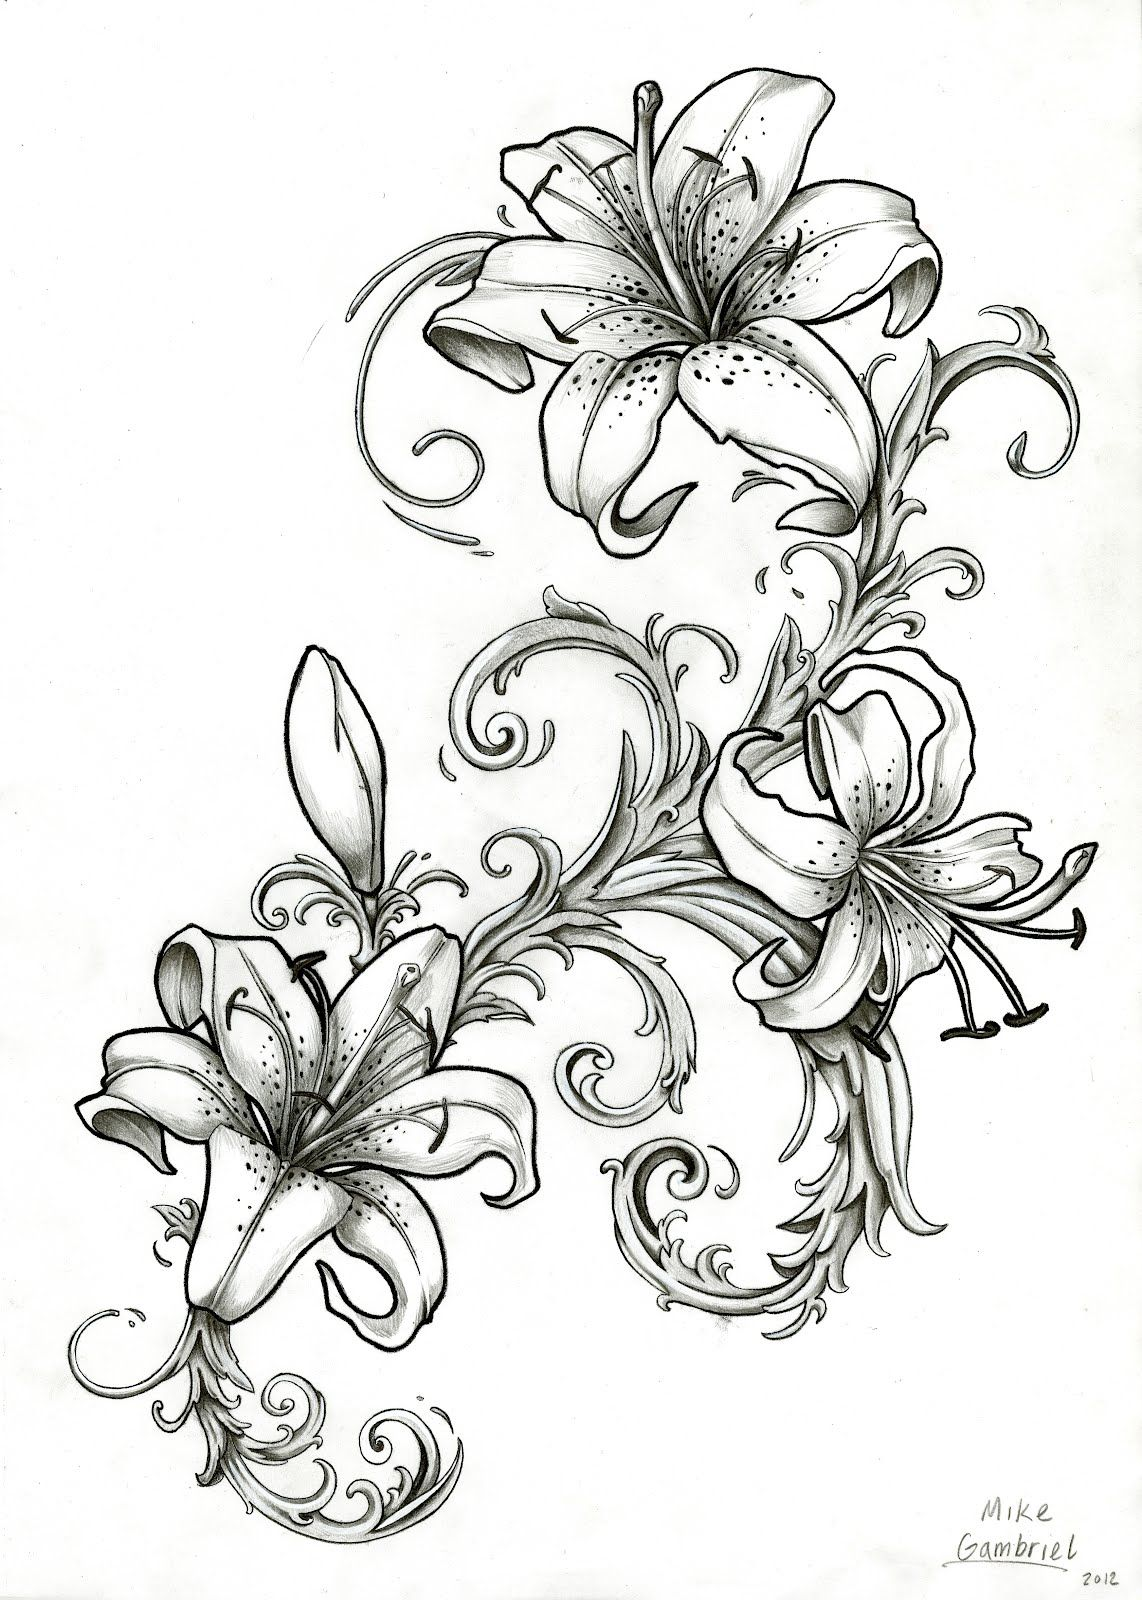 tiger lily Lily flower tattoos, Best sleeve tattoos